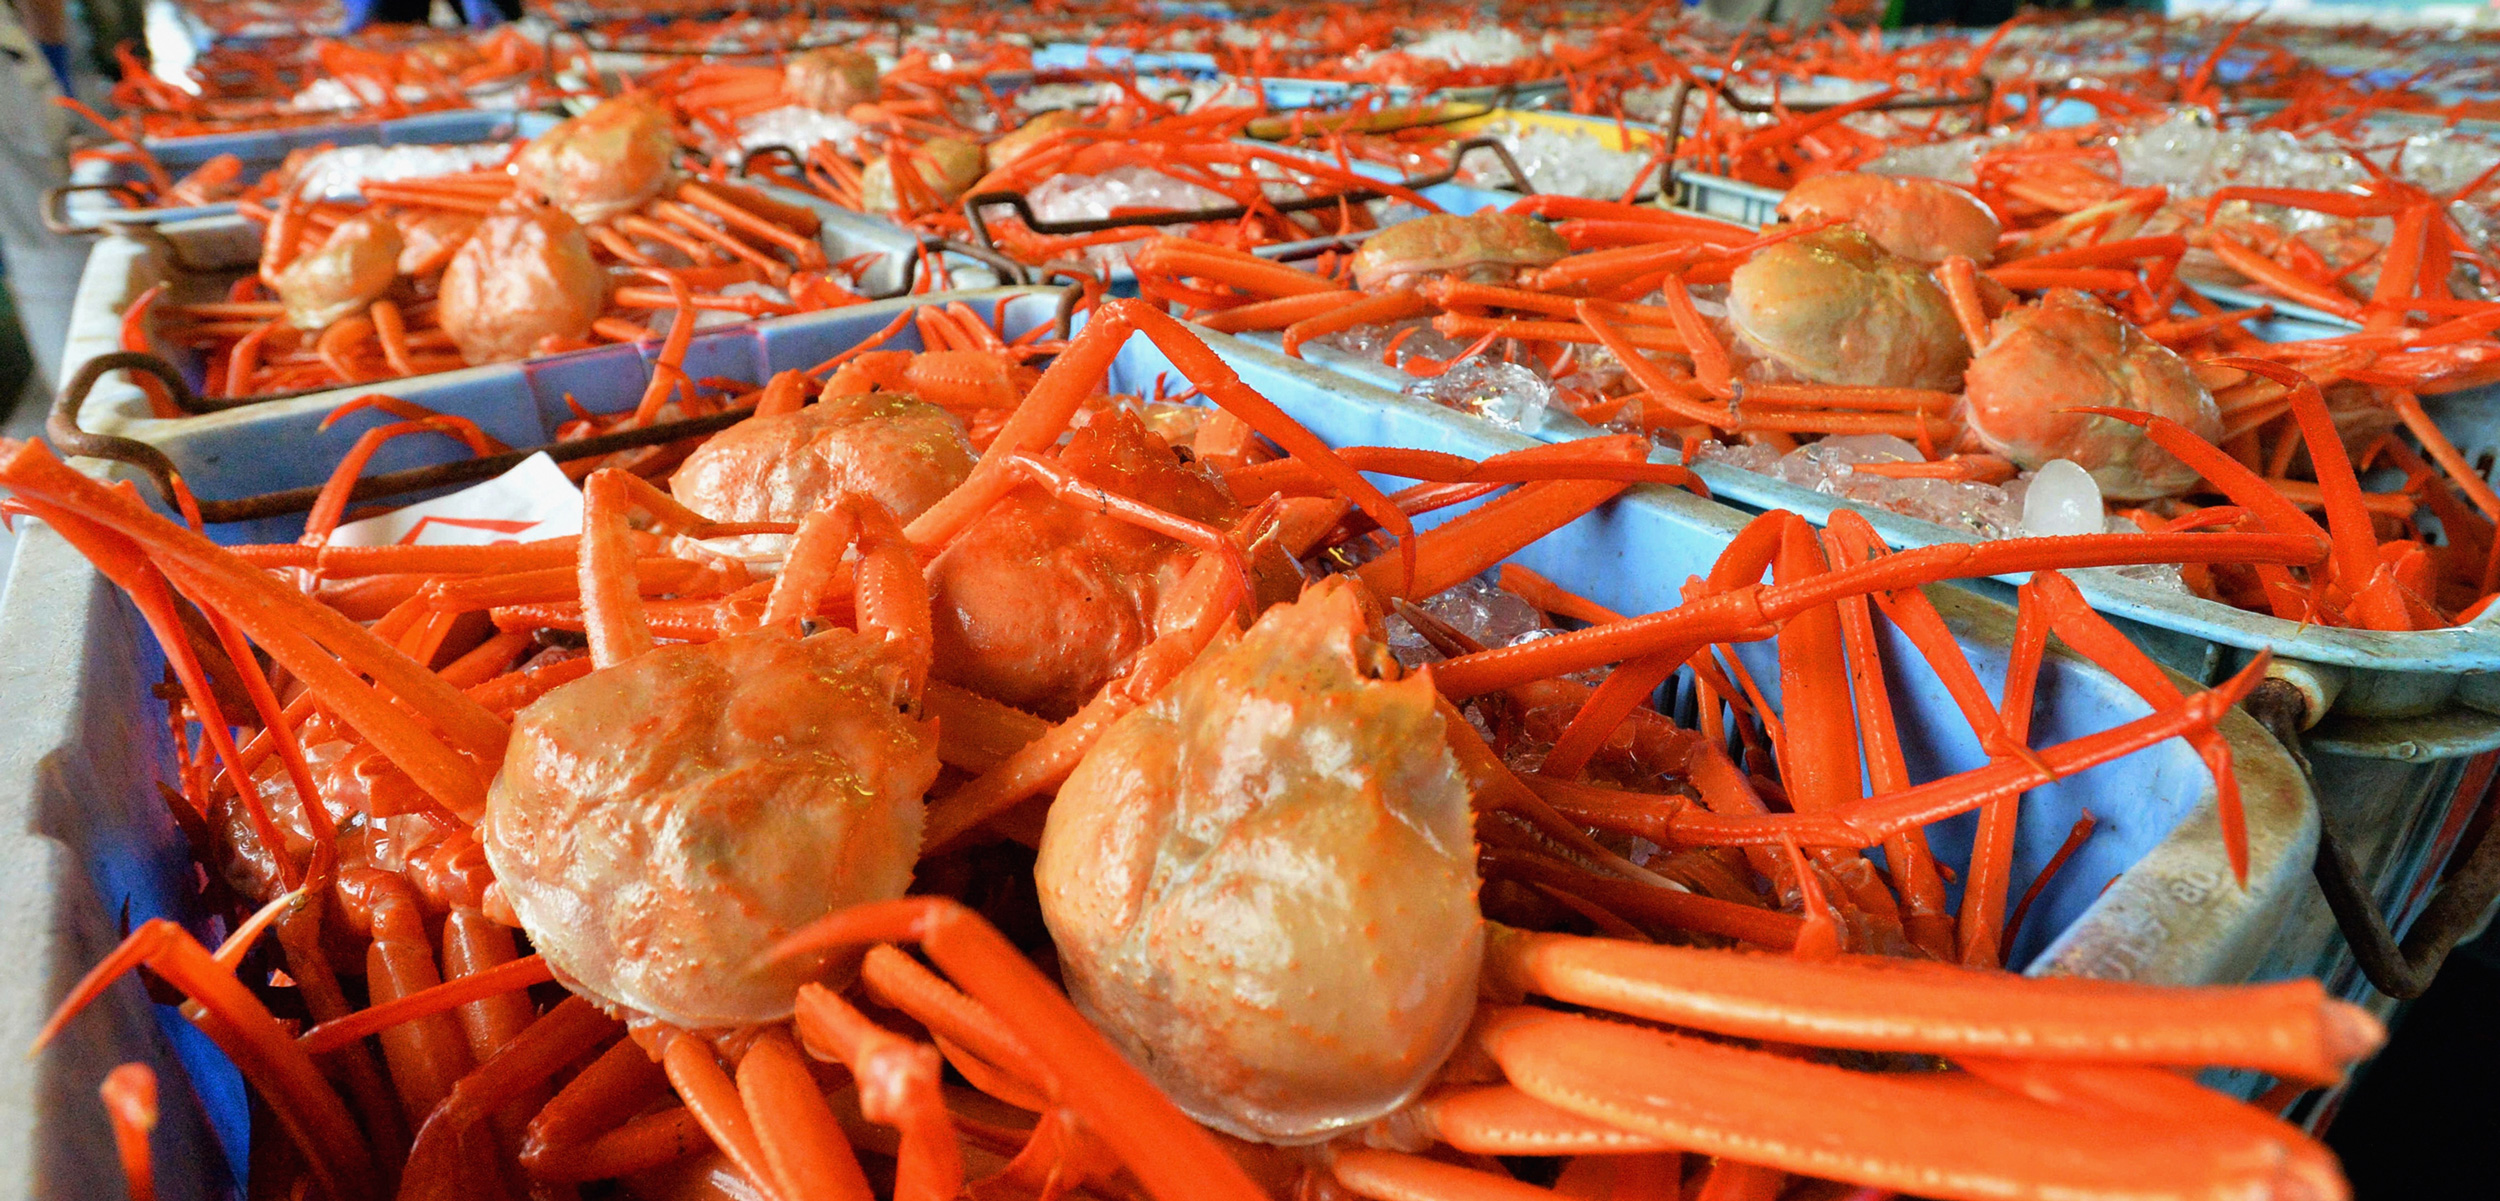 The snow crab fishery is valuable, but the ongoing disputes over fishing rights in Svalbard speak to a much larger issue. Photo by the Asahi Shimbun/Getty Images